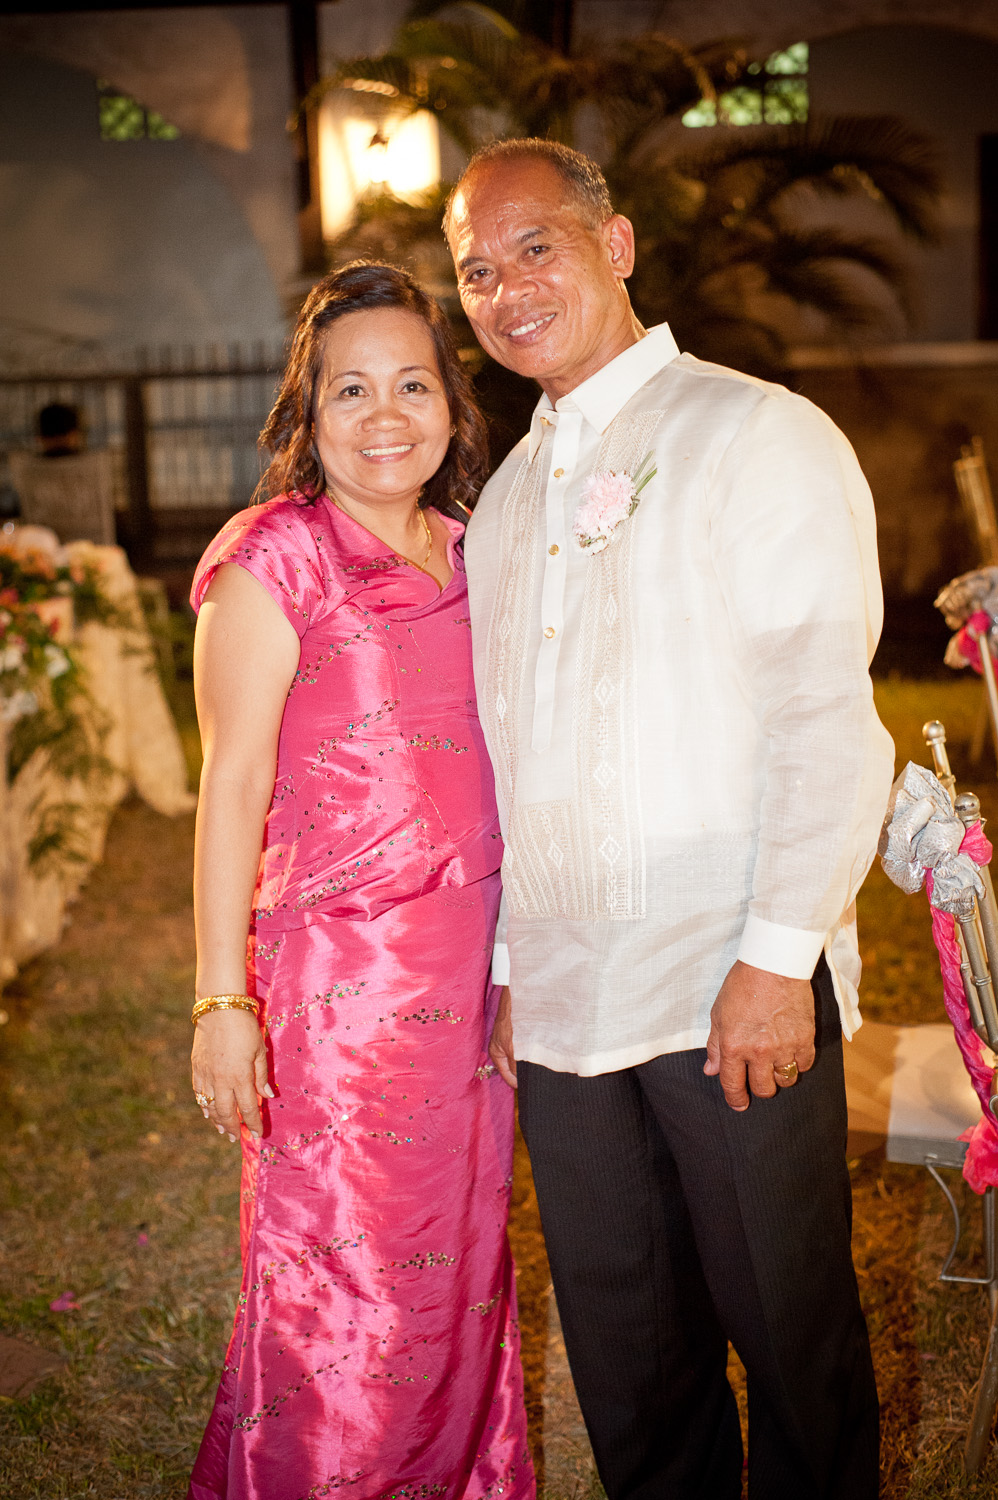 Ate May and her husband during at the wedding reception after her eldest son's church ceremony. Photo taken in 2013.